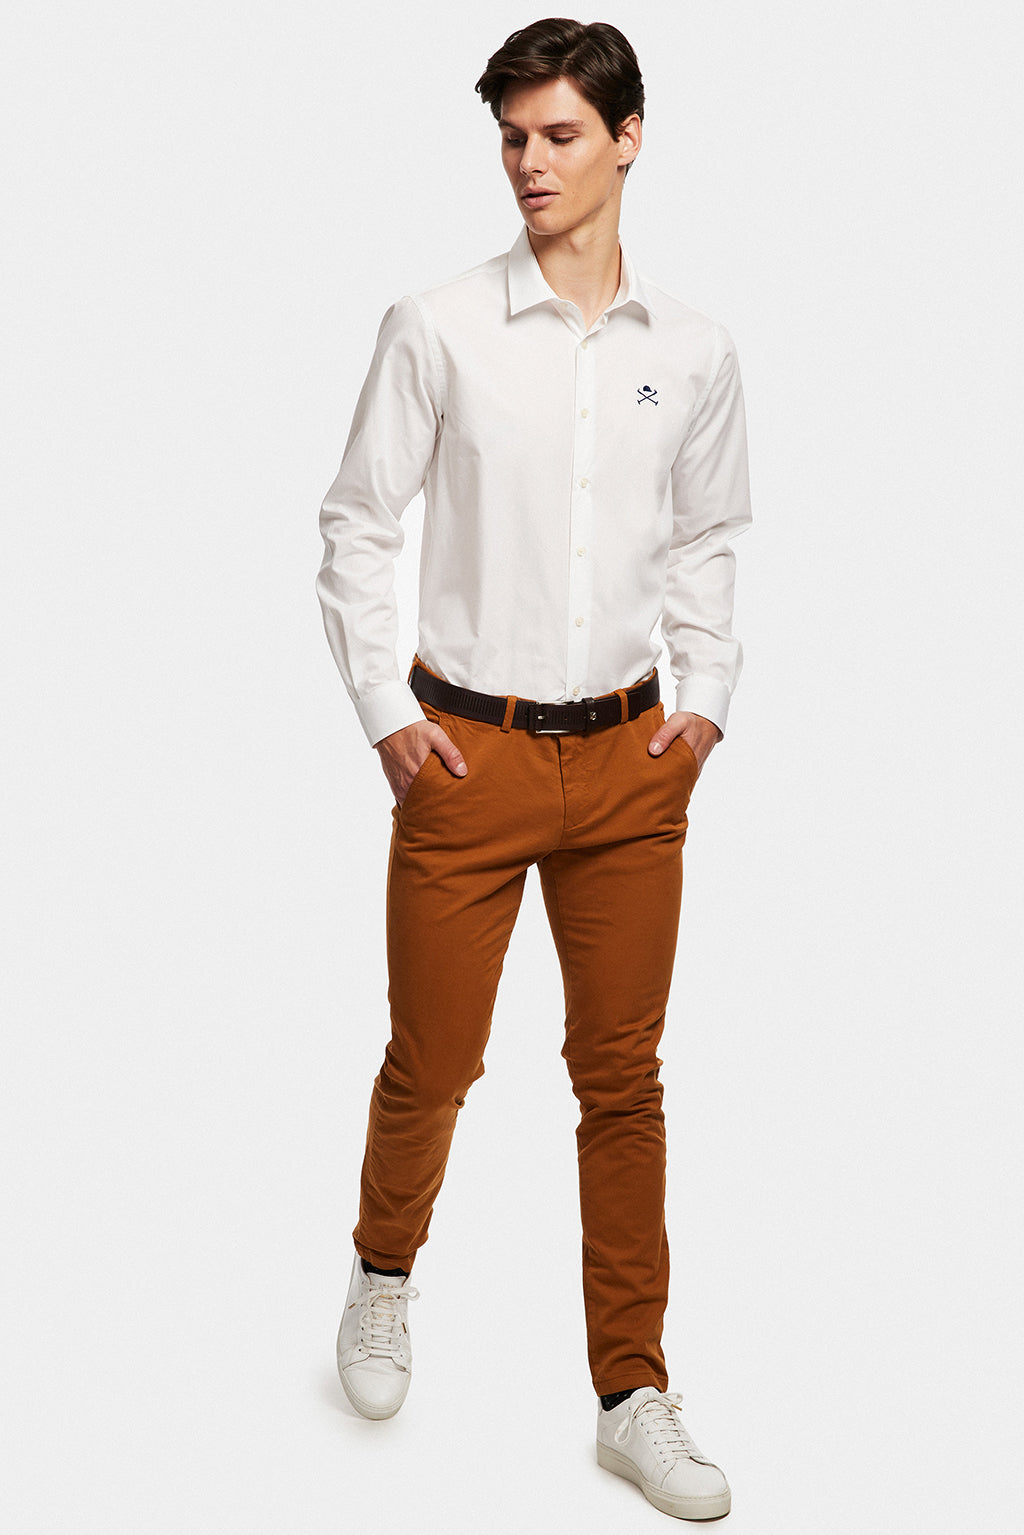 ACADEMY white Shirt